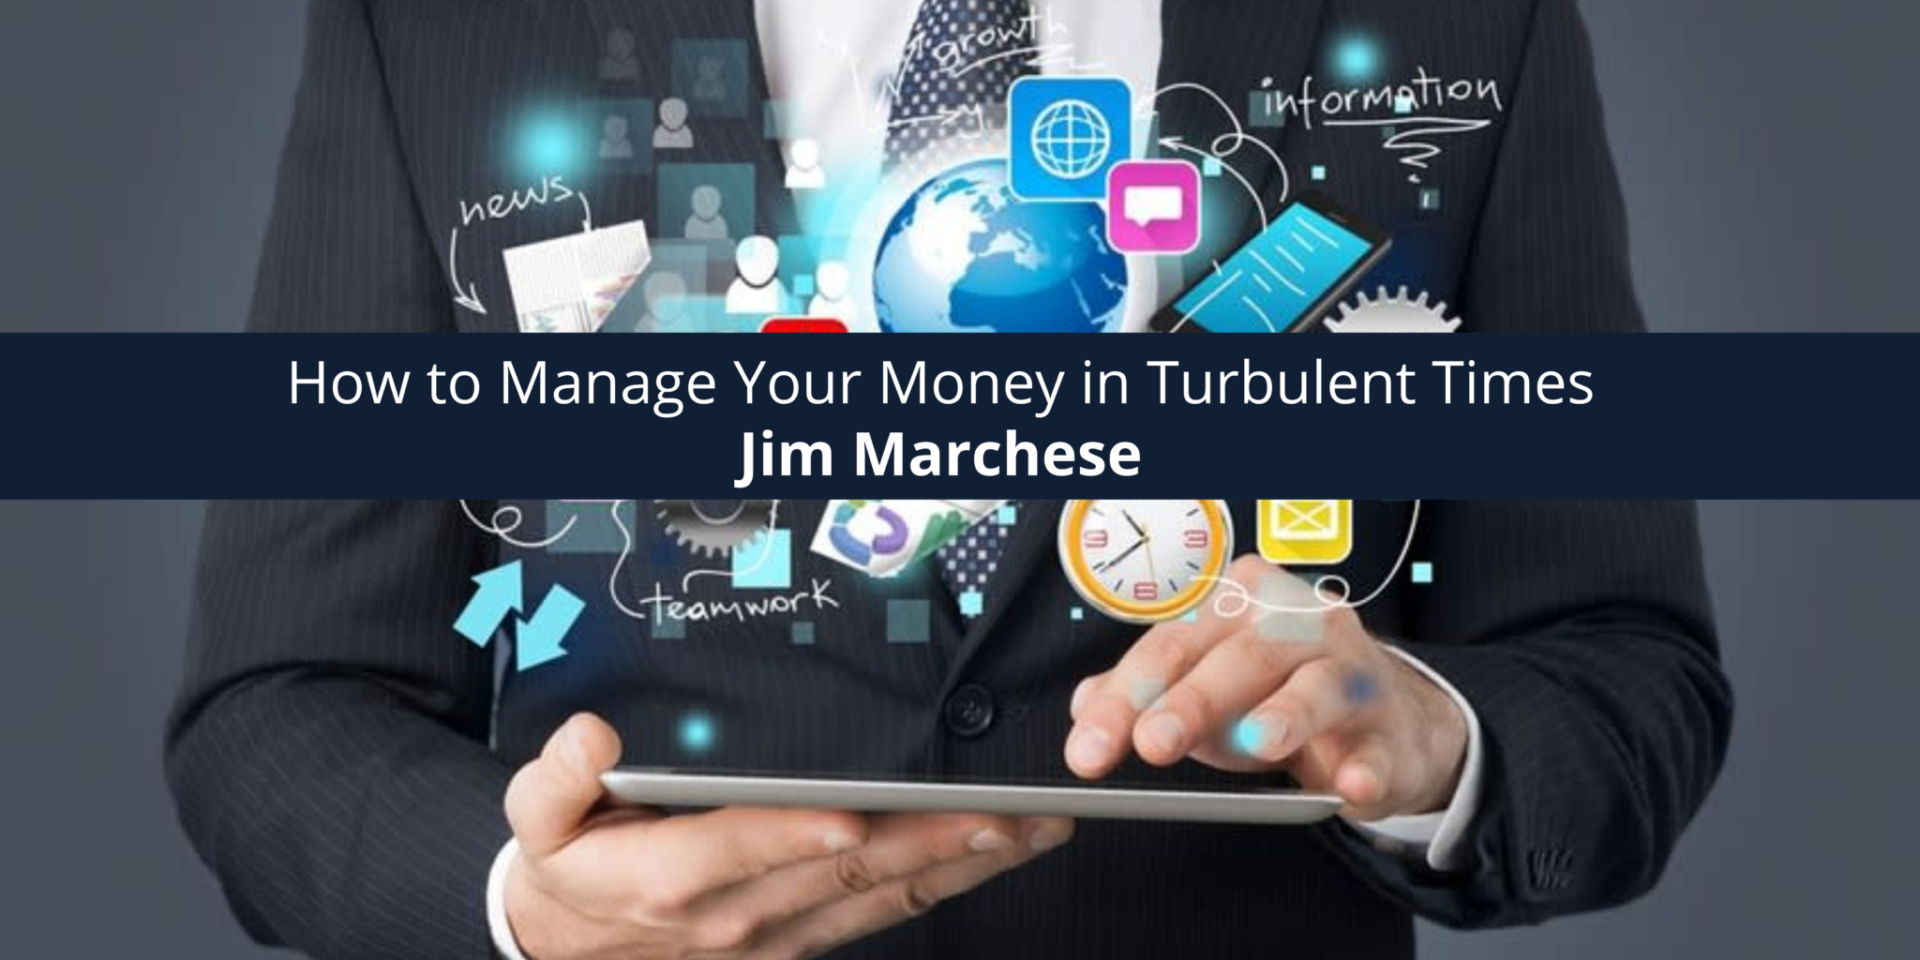 How to Manage Your Money in Turbulent Times